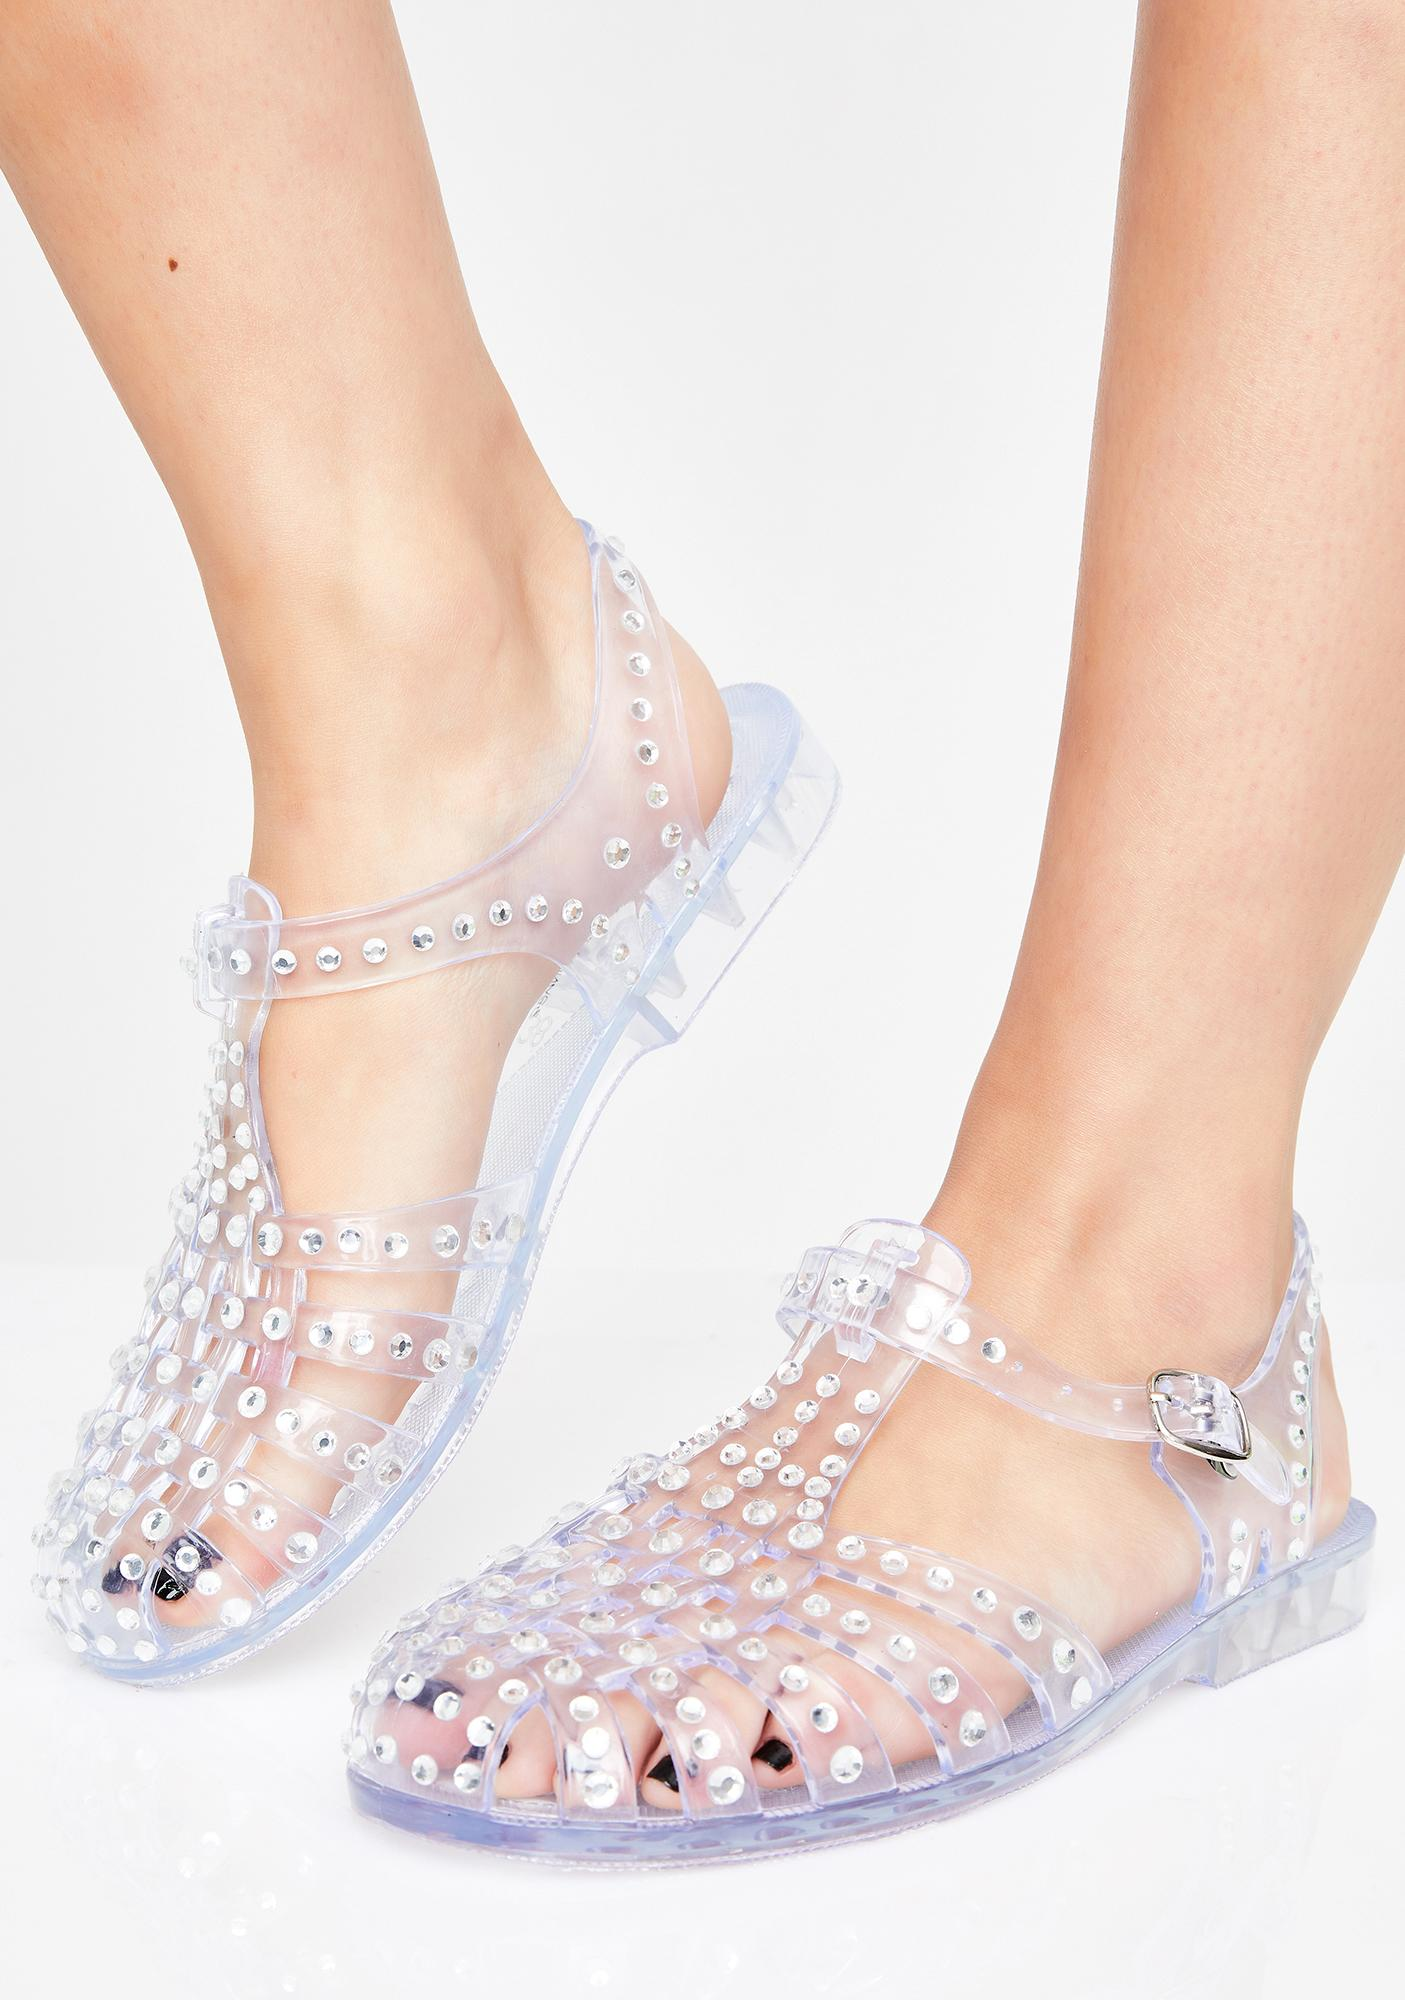 Totally Jelly Clear Sandals